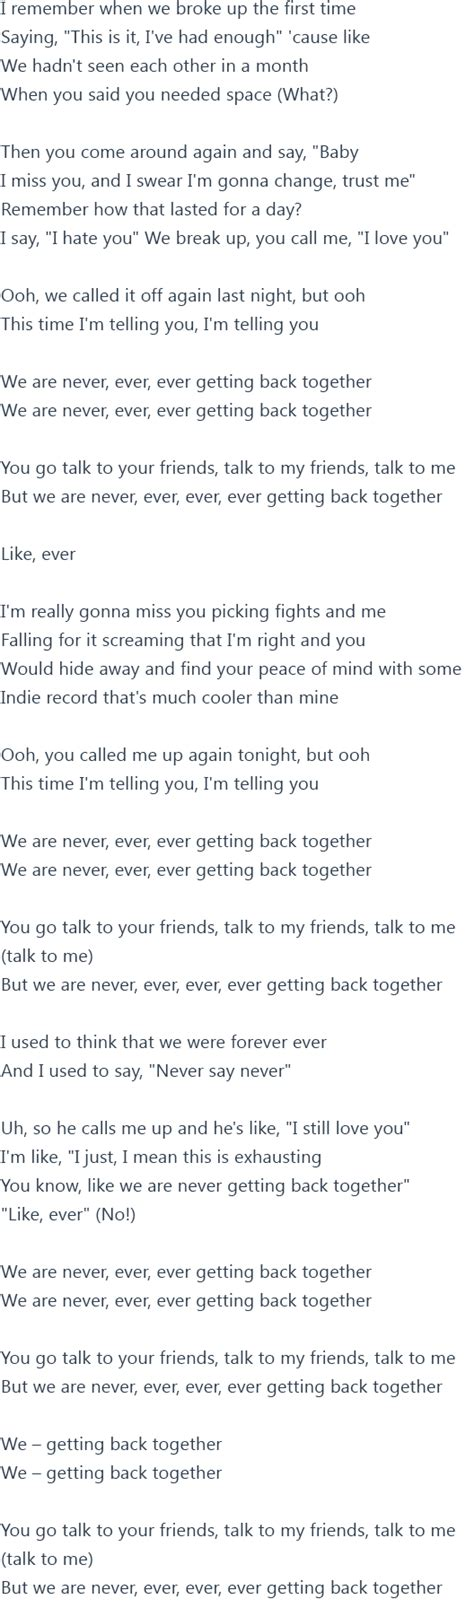 end game lyrics writers taylor swift we are never ever getting back together